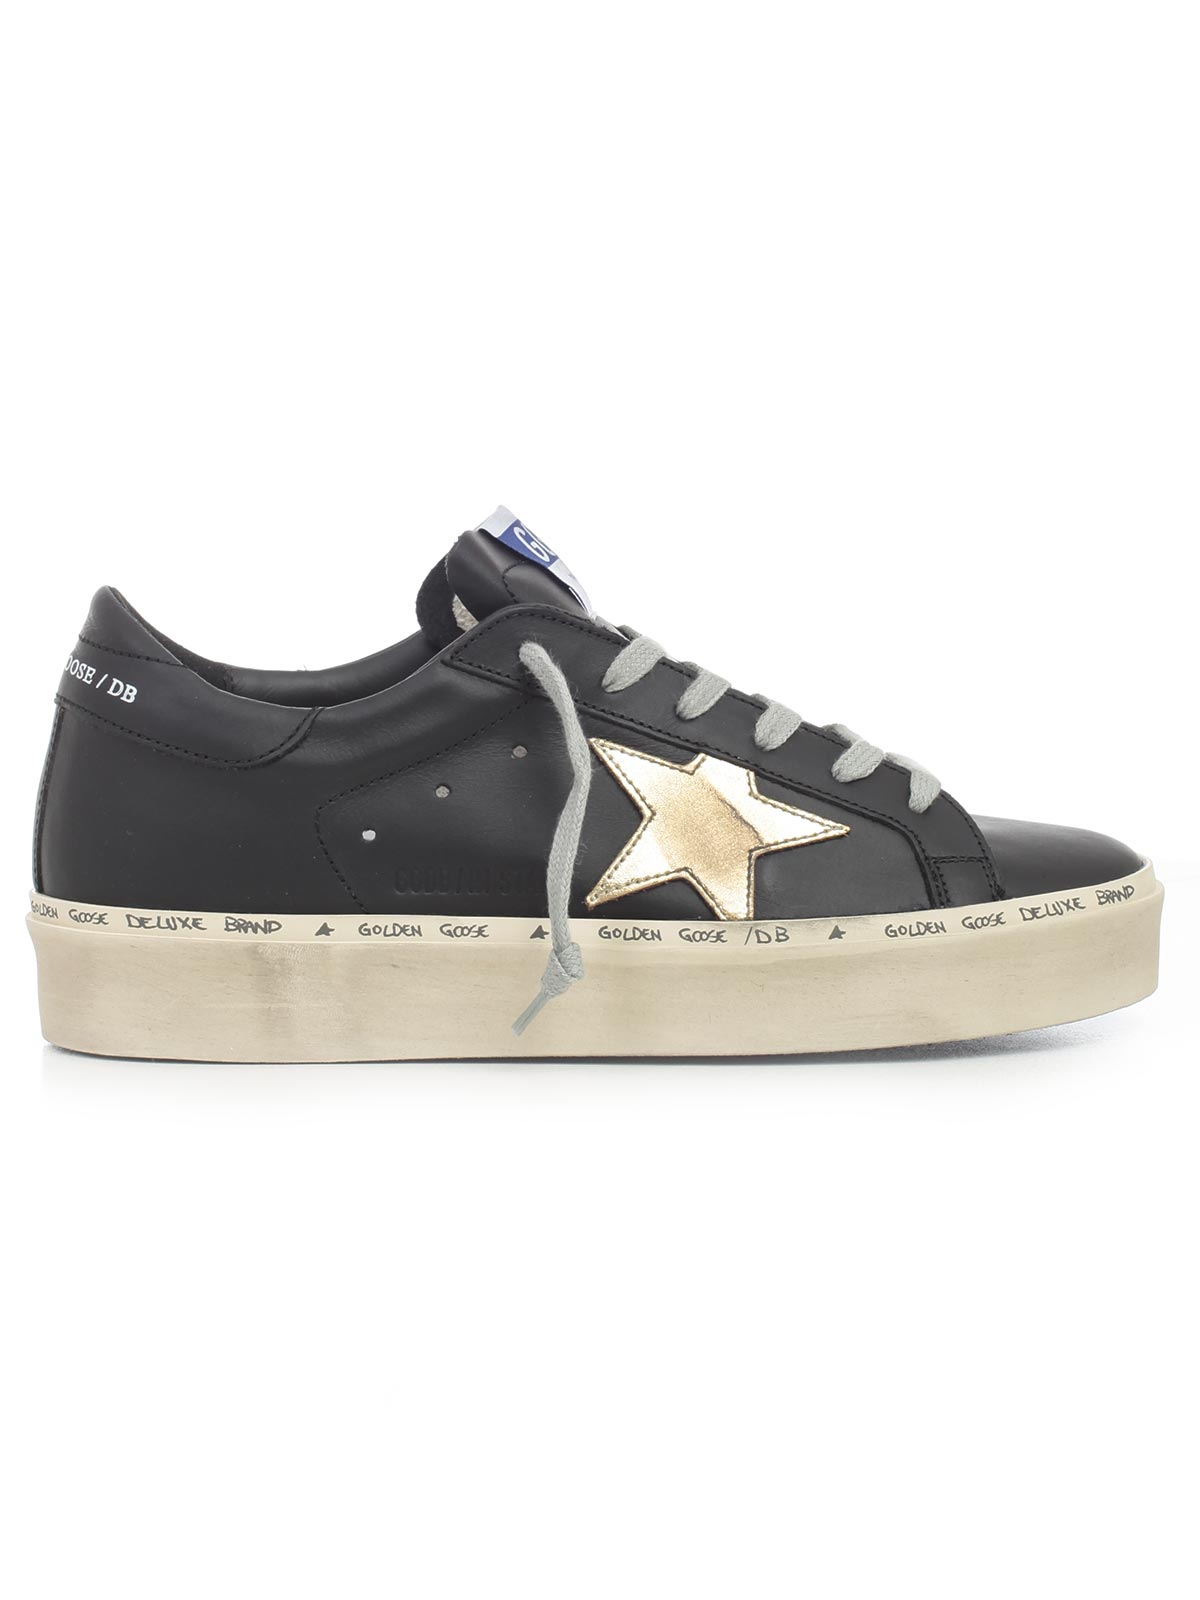 142d6792295a8 Golden Goose Deluxe Brand Shoes G33WS945.A6 - A6 BLACK GOLD LEATHER ...